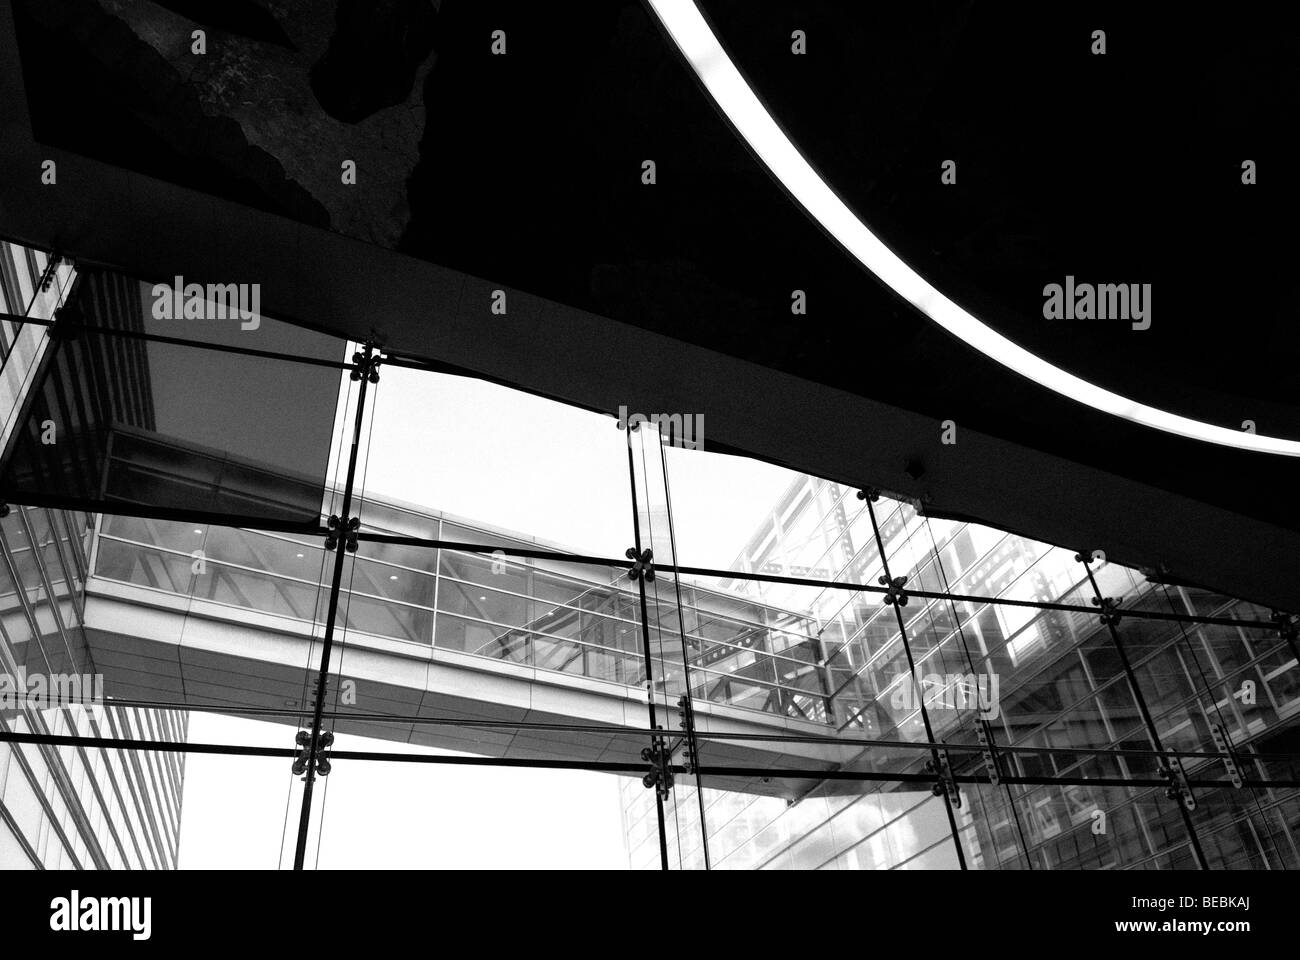 ARCHITECTURAL DETAIL - Stock Image